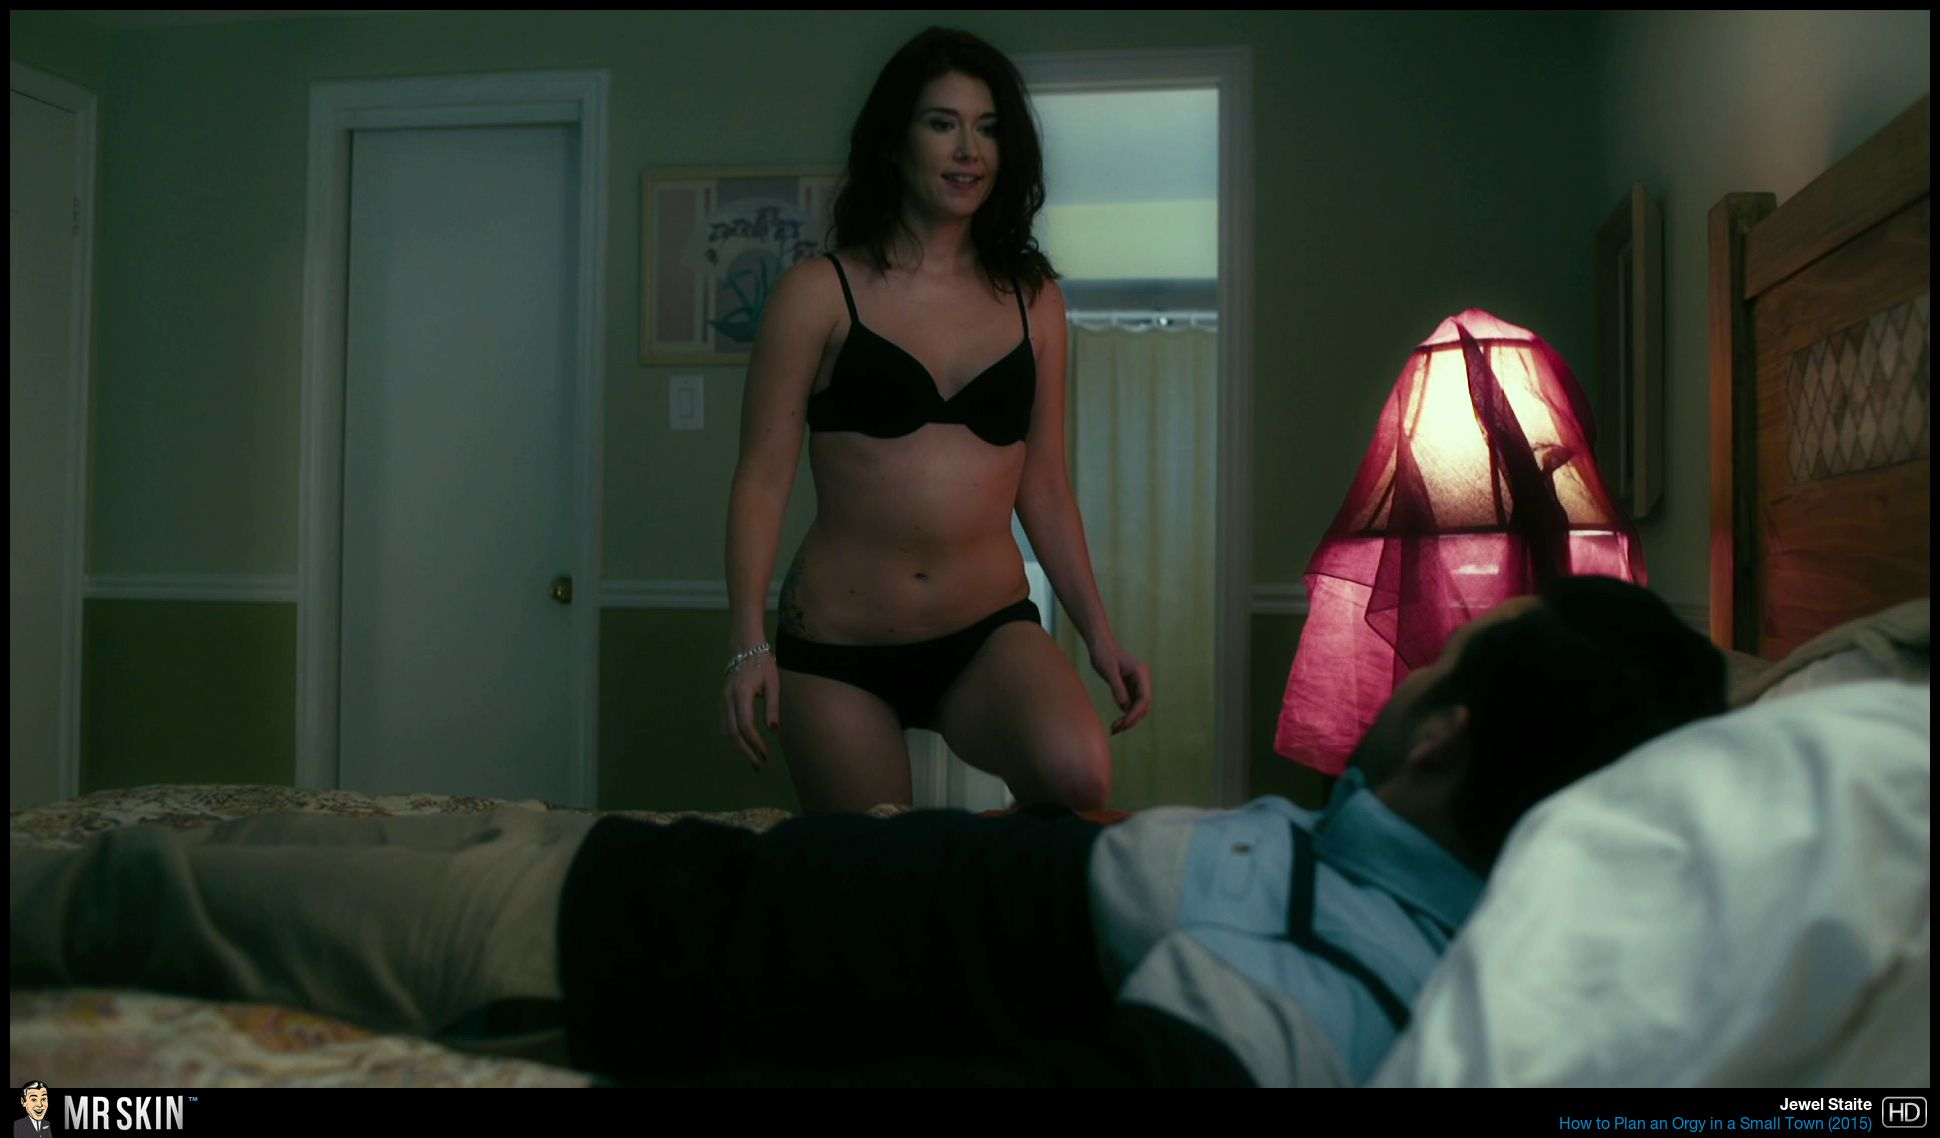 jewel staite ass nude